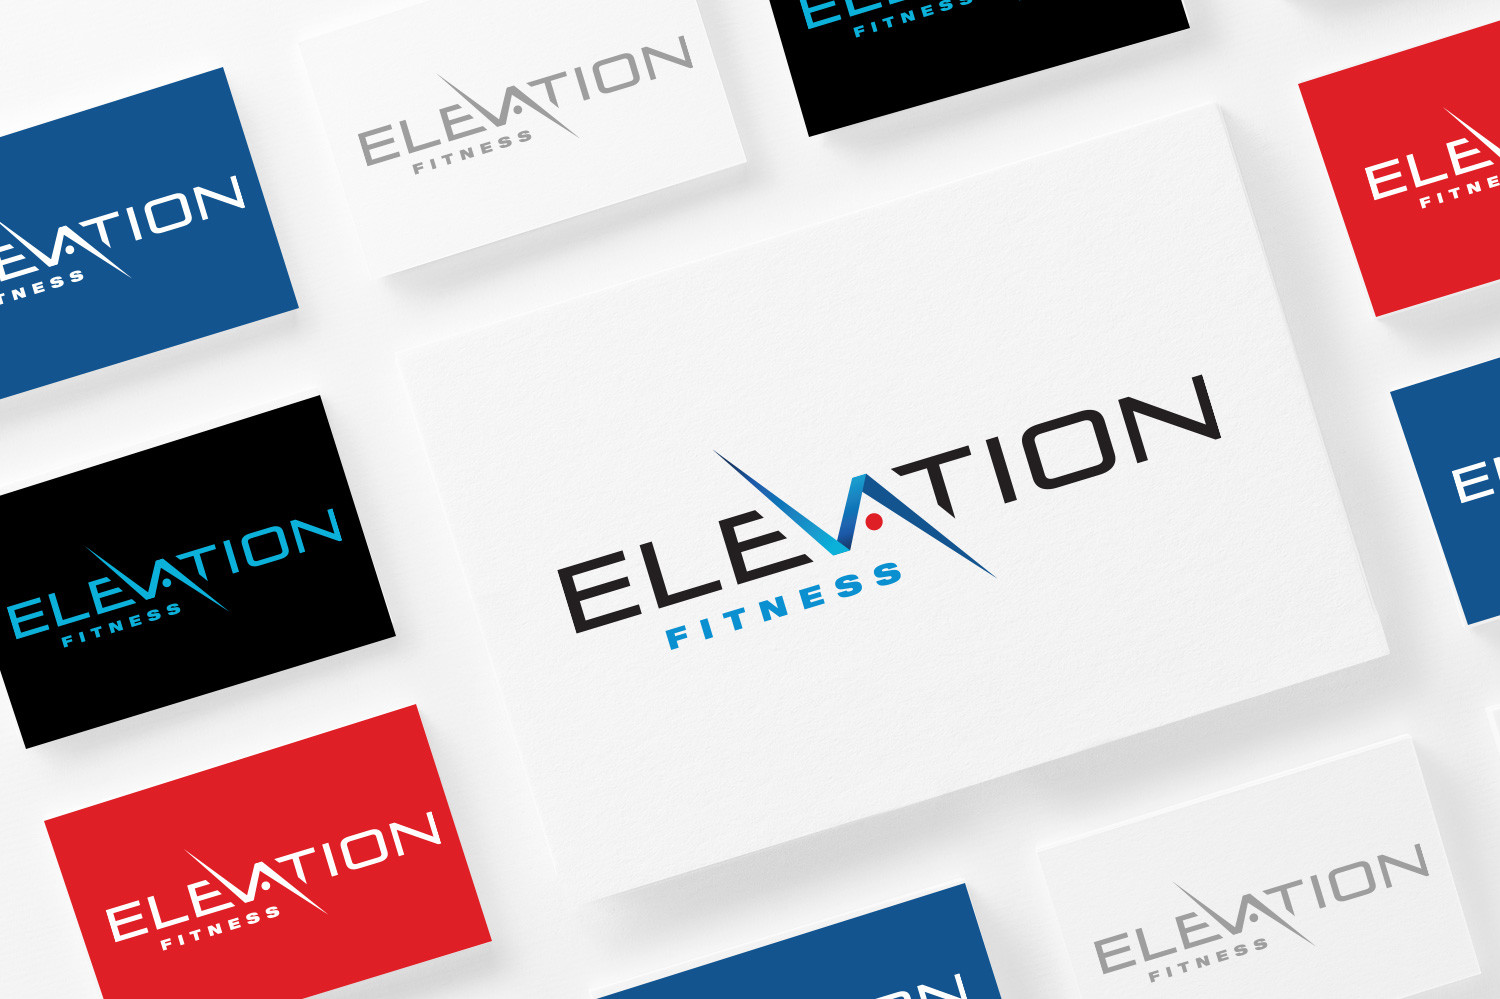 elevation_CorporateIdentity